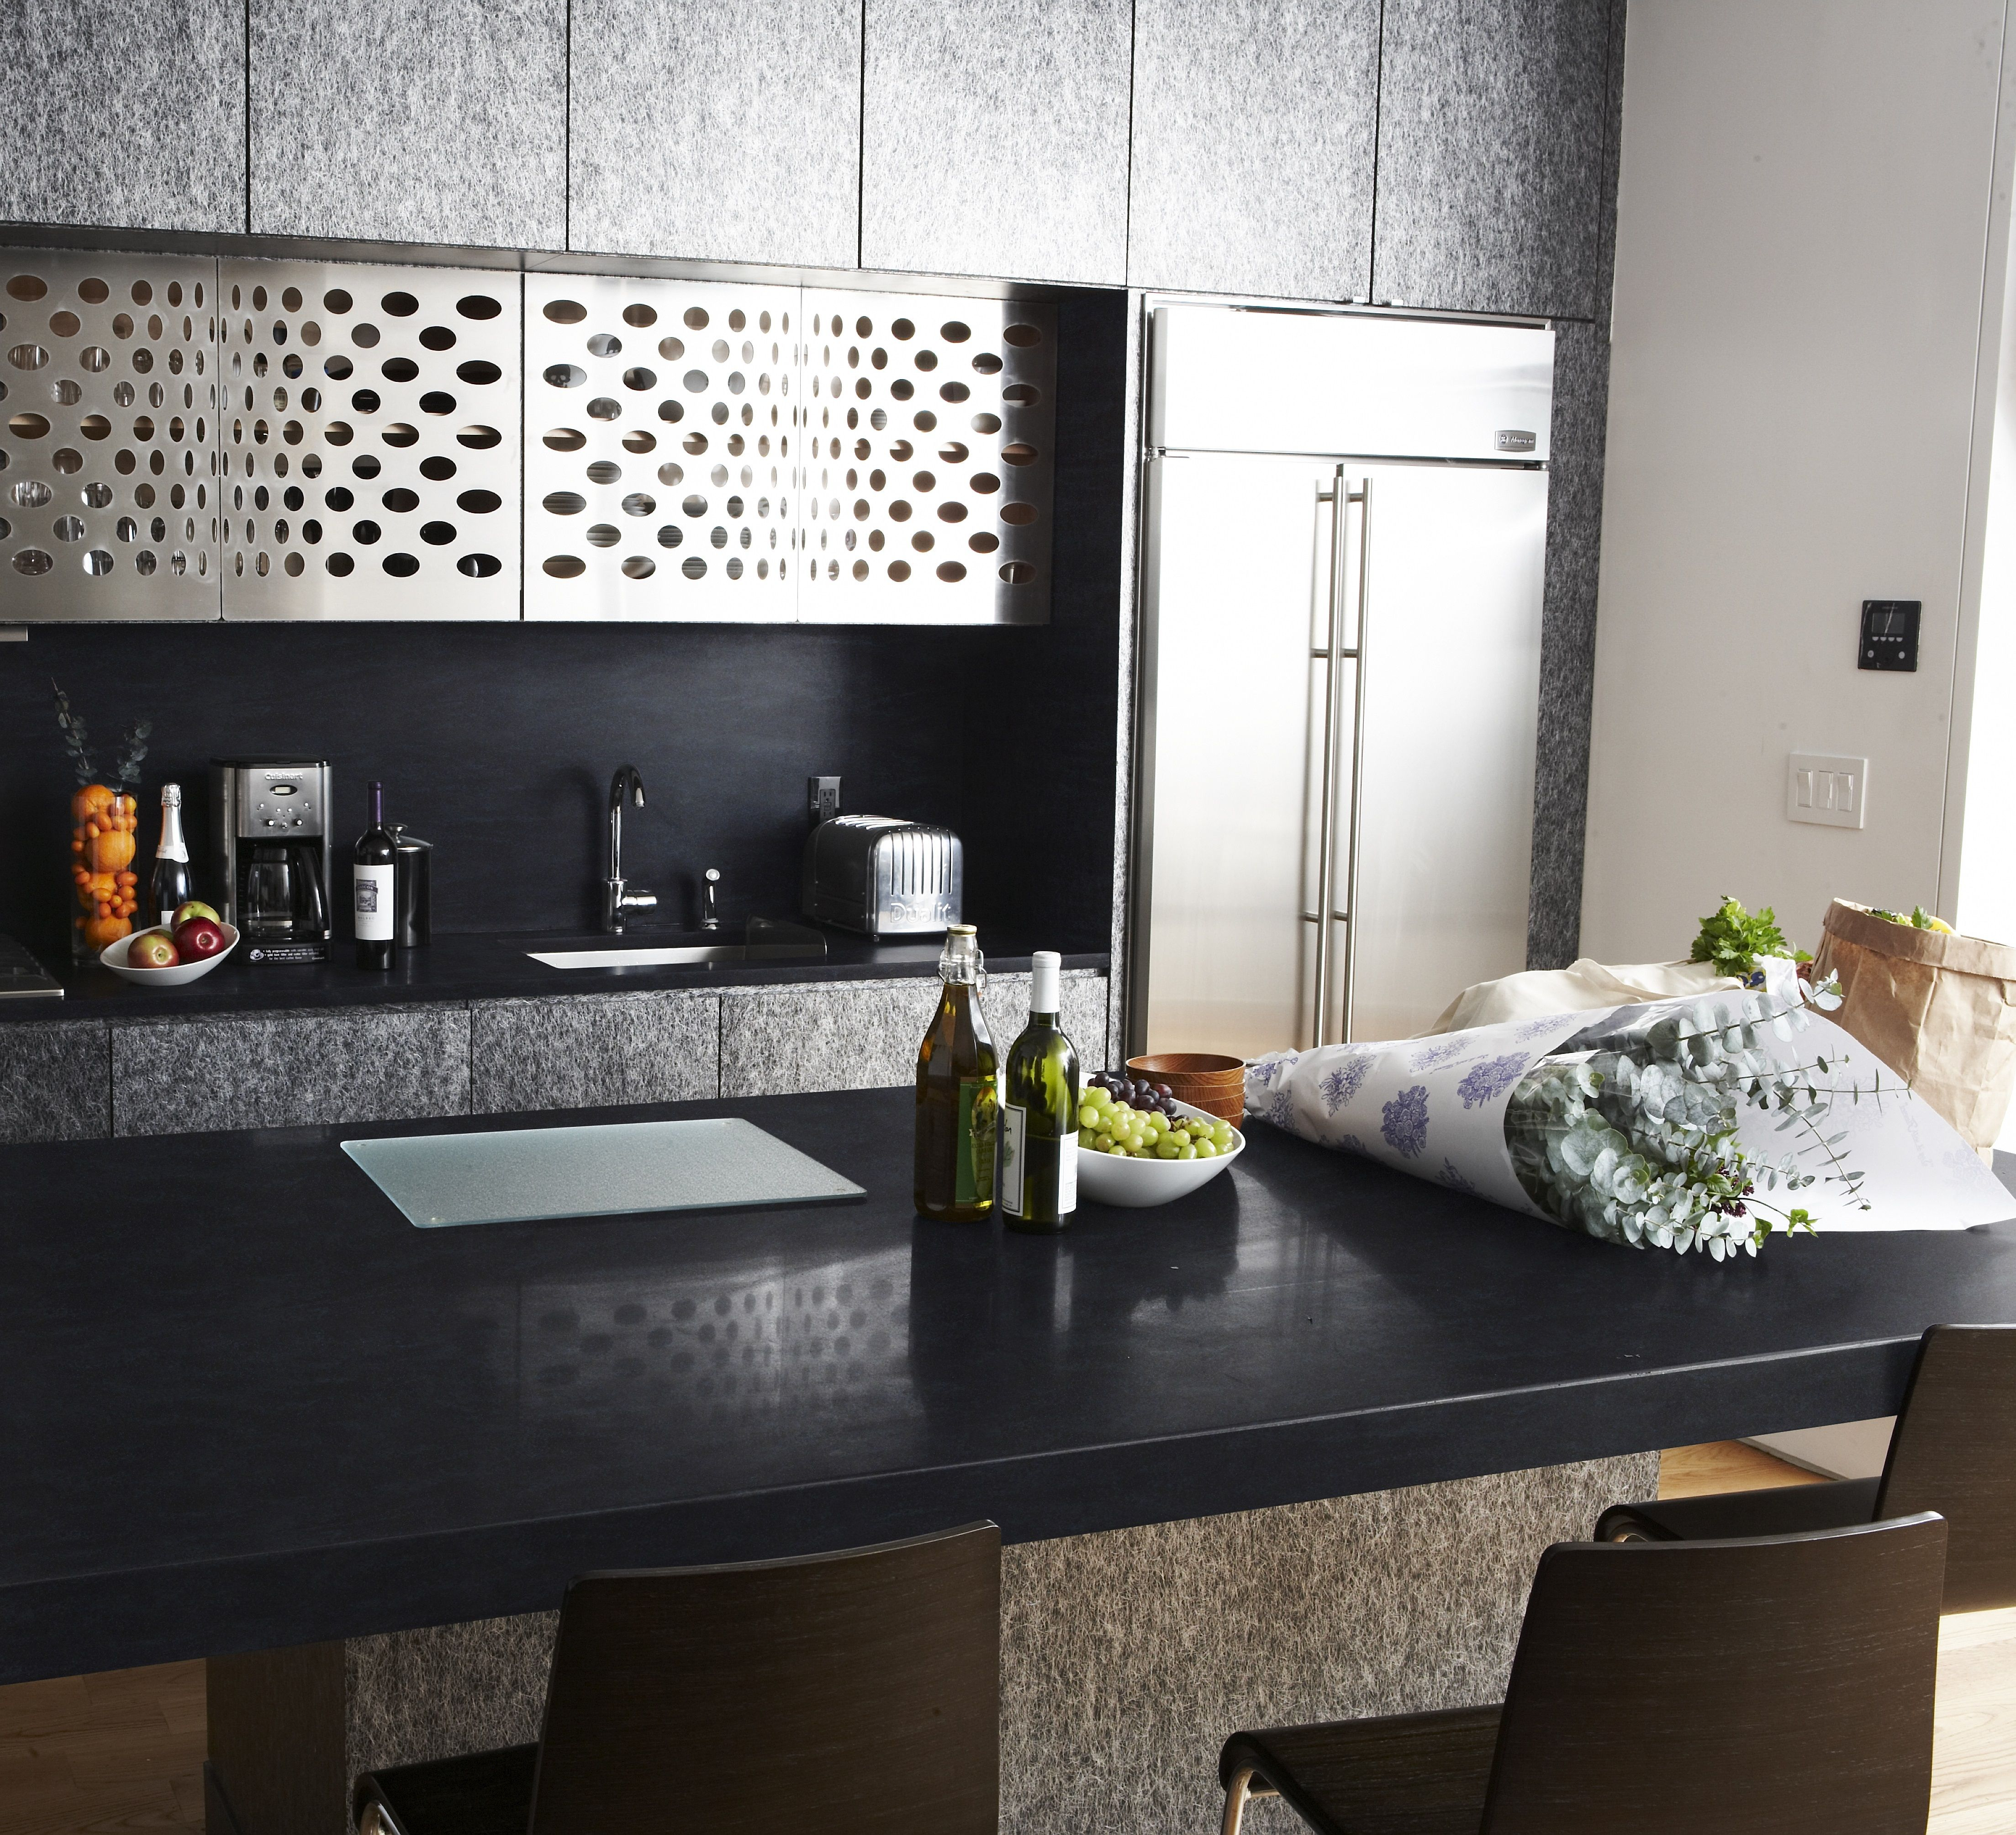 How Deep Are Kitchen Counters